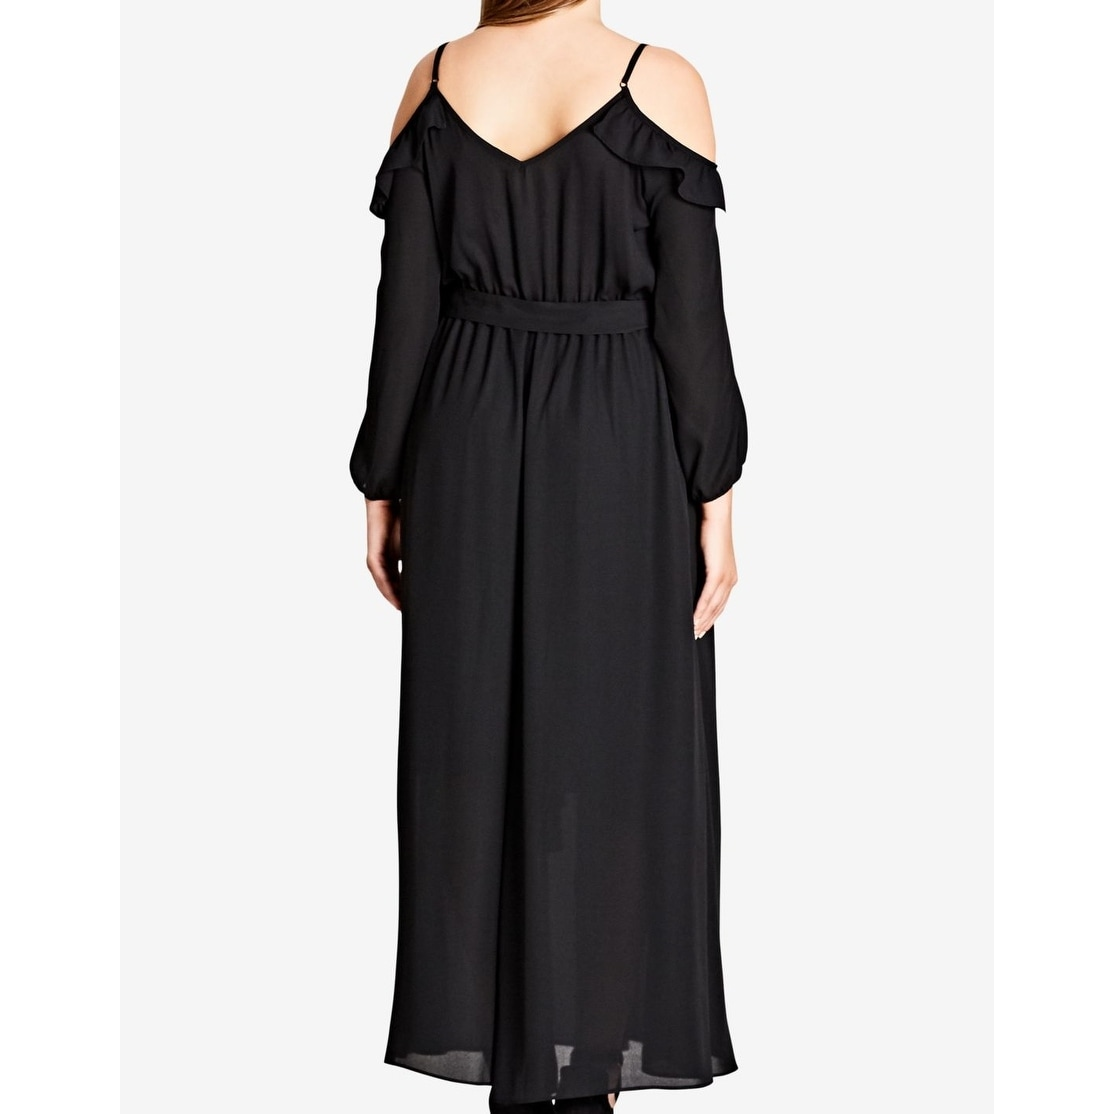 5f51c6b238 Shop City Chic Black Womens Size 24W Plus Cold Shoulder Maxi Dress - Free  Shipping Today - Overstock - 27280516